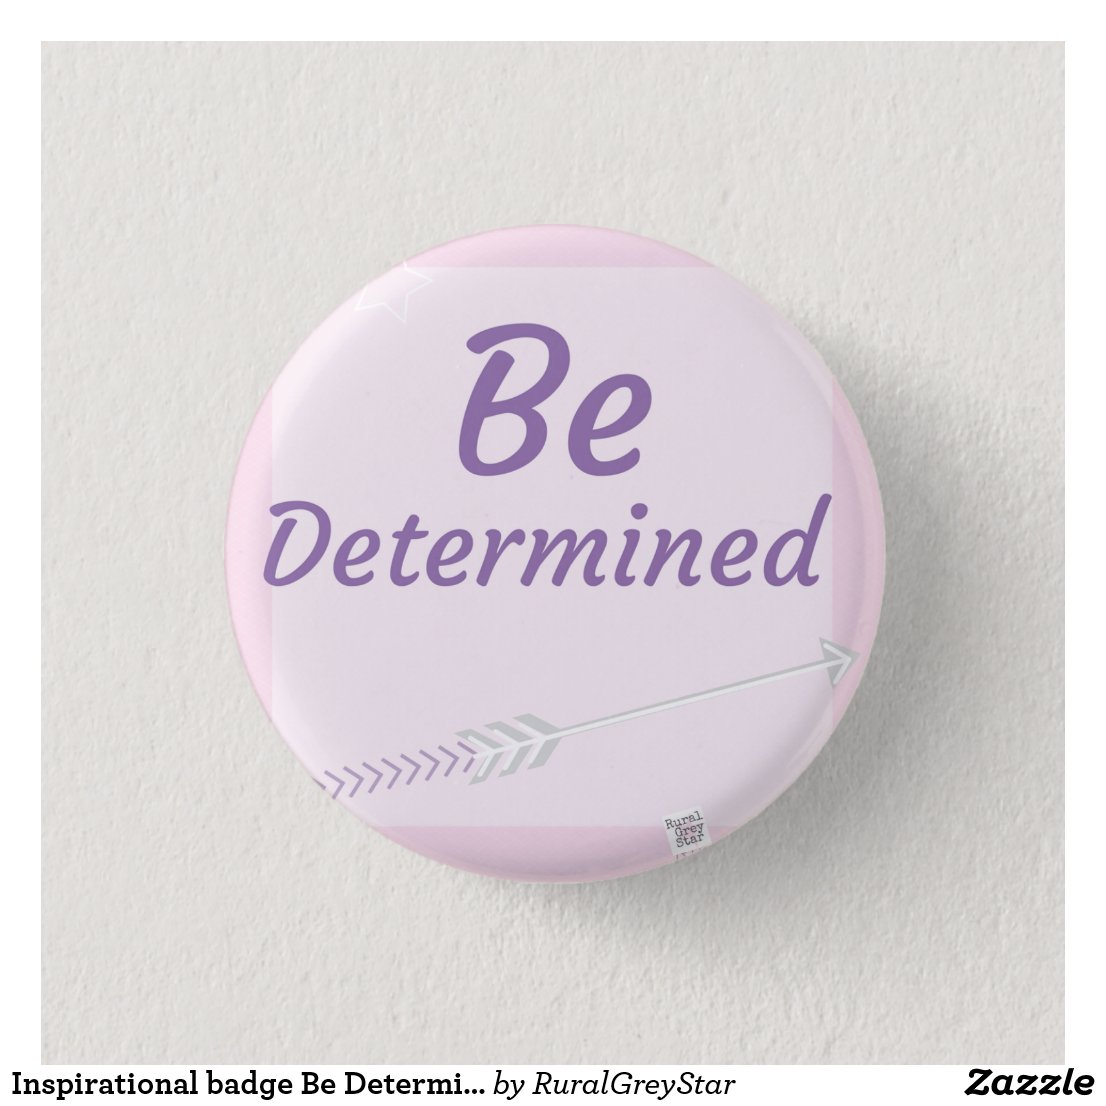 Inspirational badge Be Determined